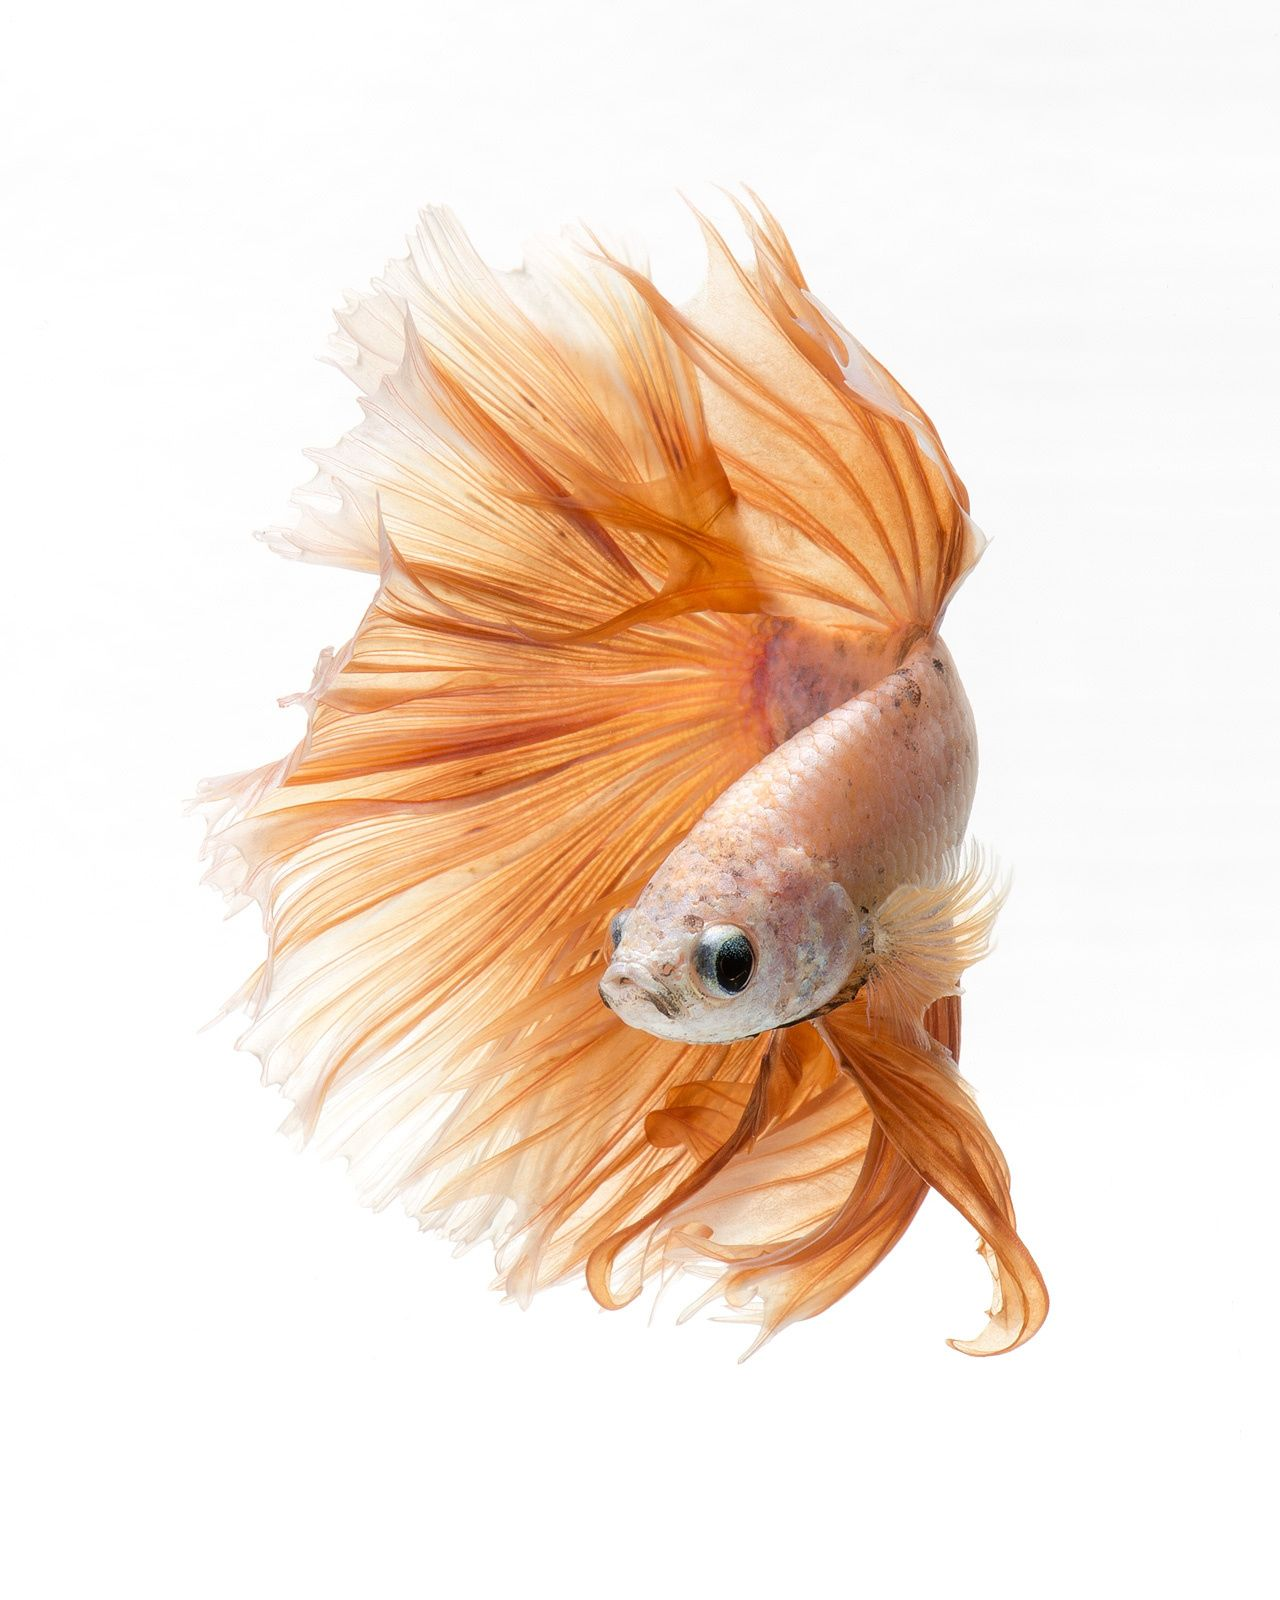 Mr. Peach - Capture the moving moment of peach color siamese fighting fish isolated on black background. Betta fish. Fish of Thailand